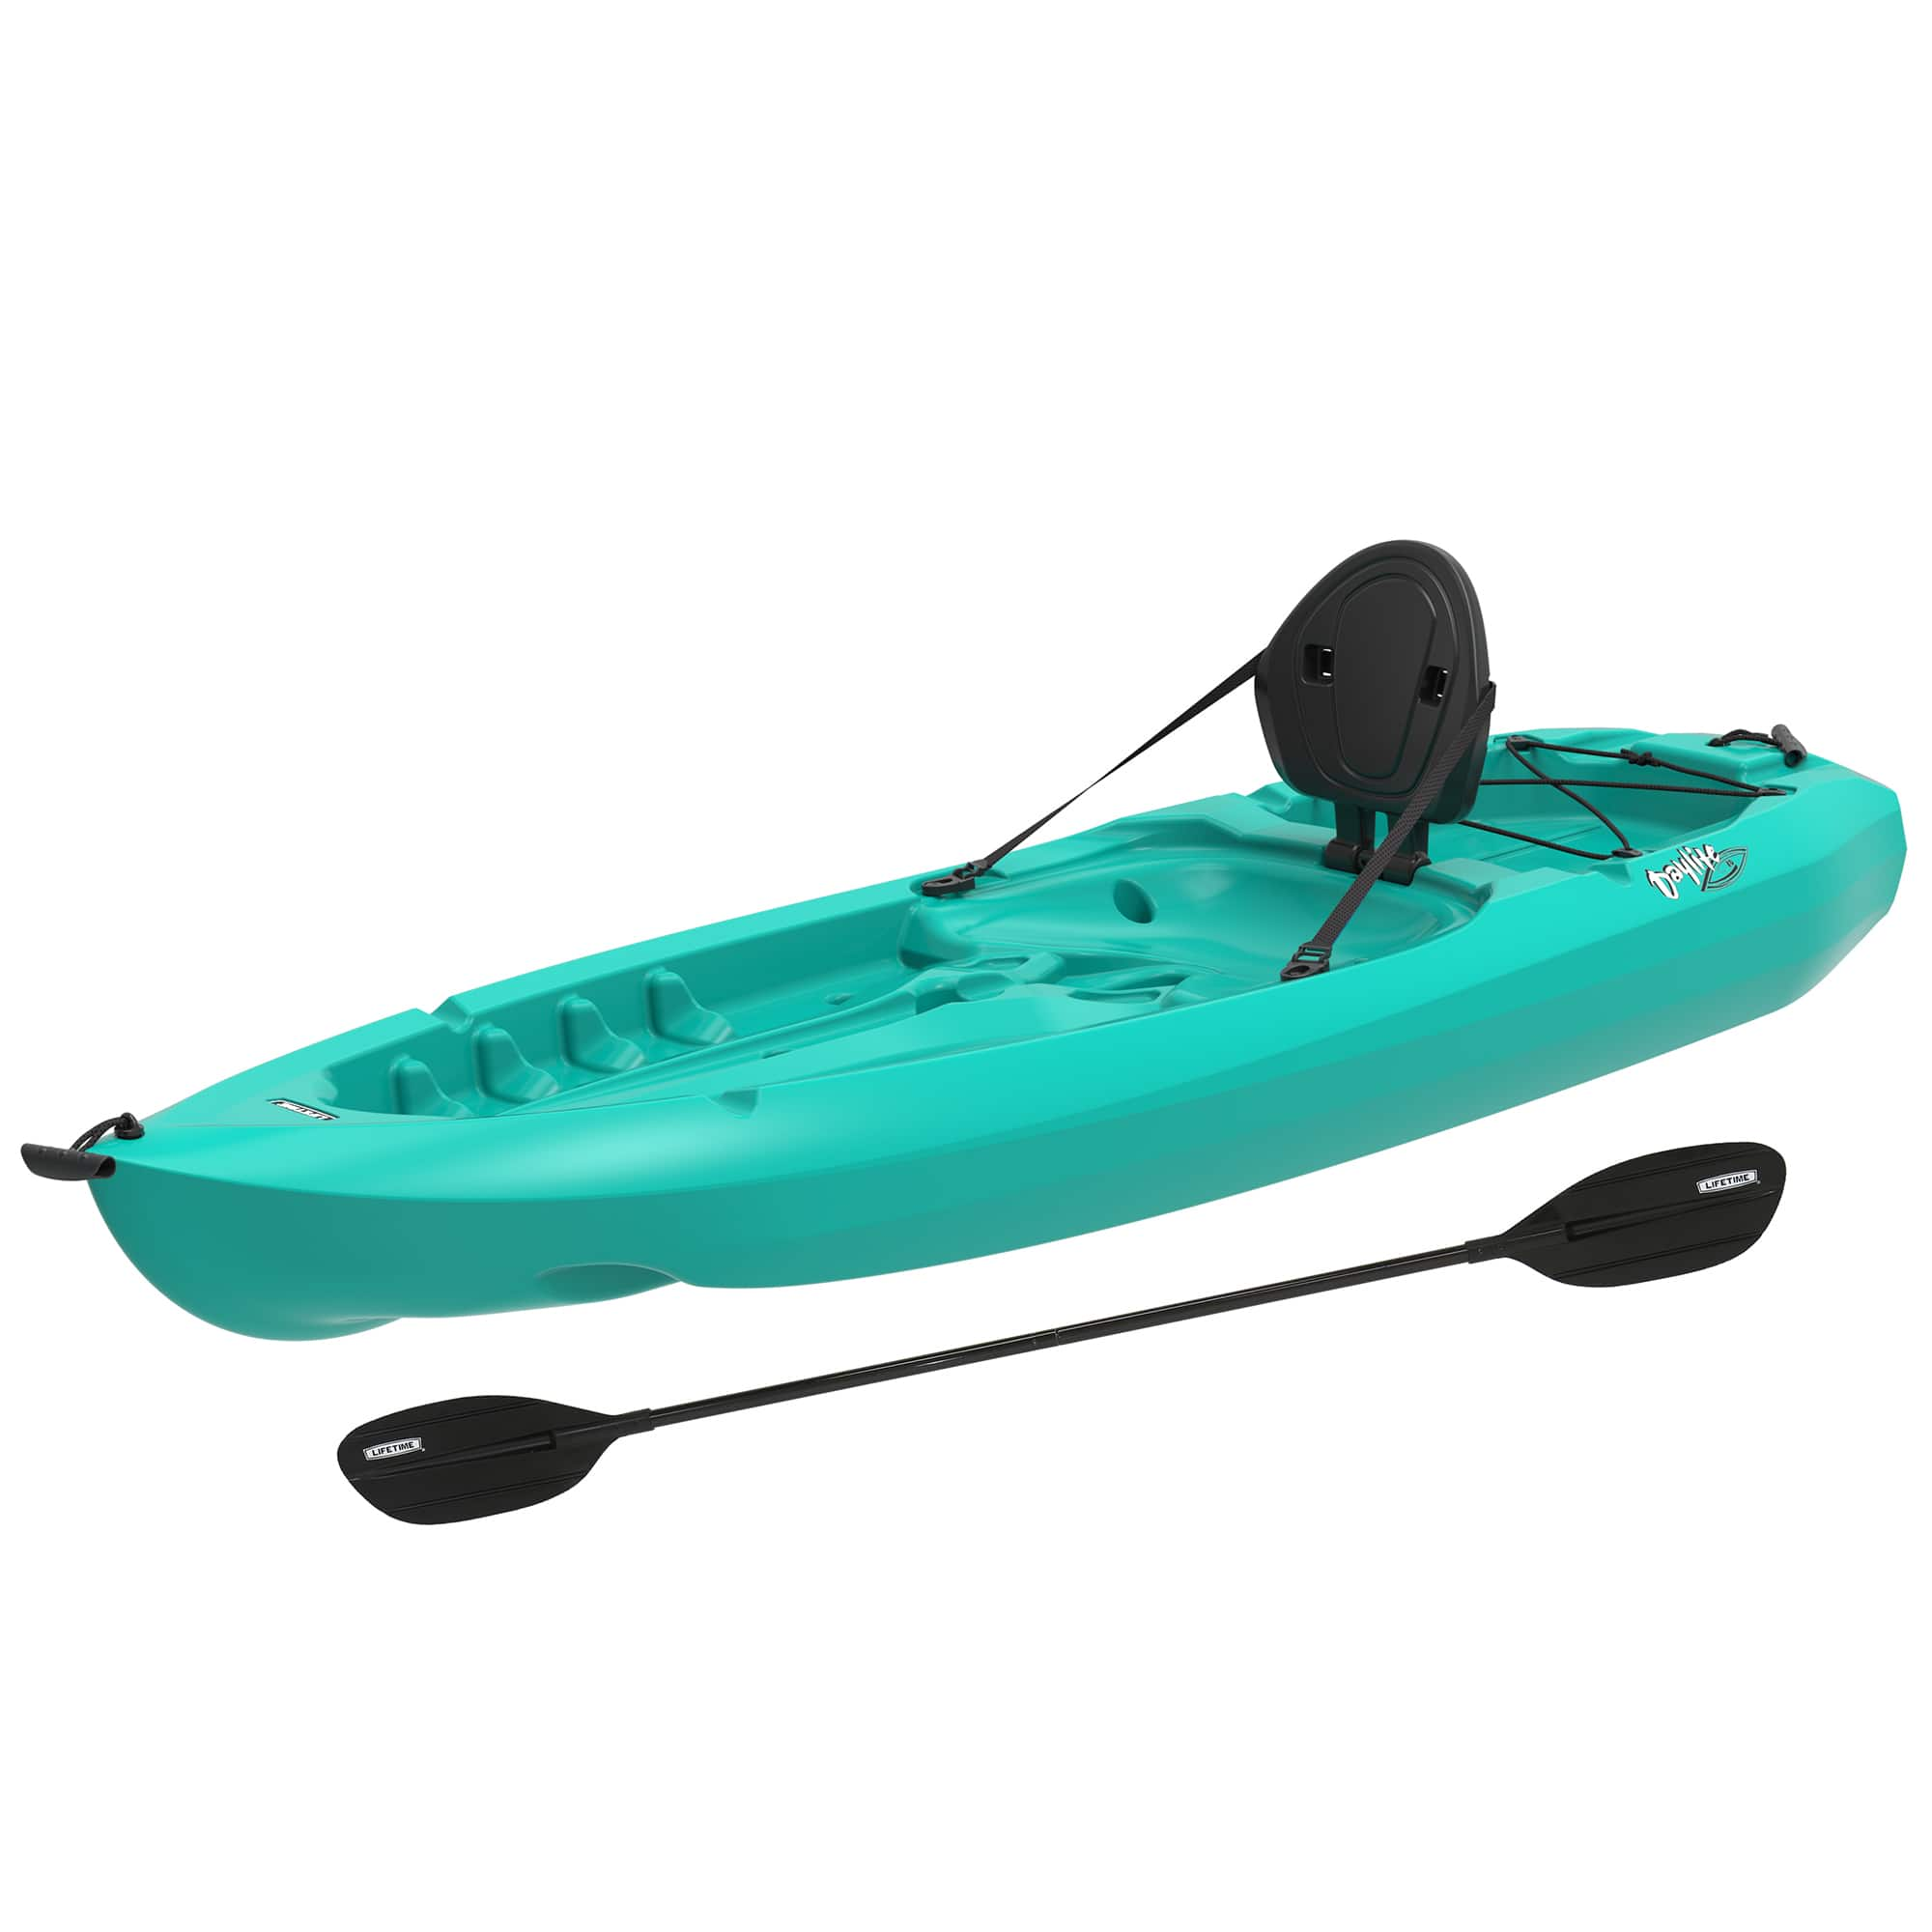 Lifetime Daylite 80 Sit-On-Top Kayak (Paddle Included) $170